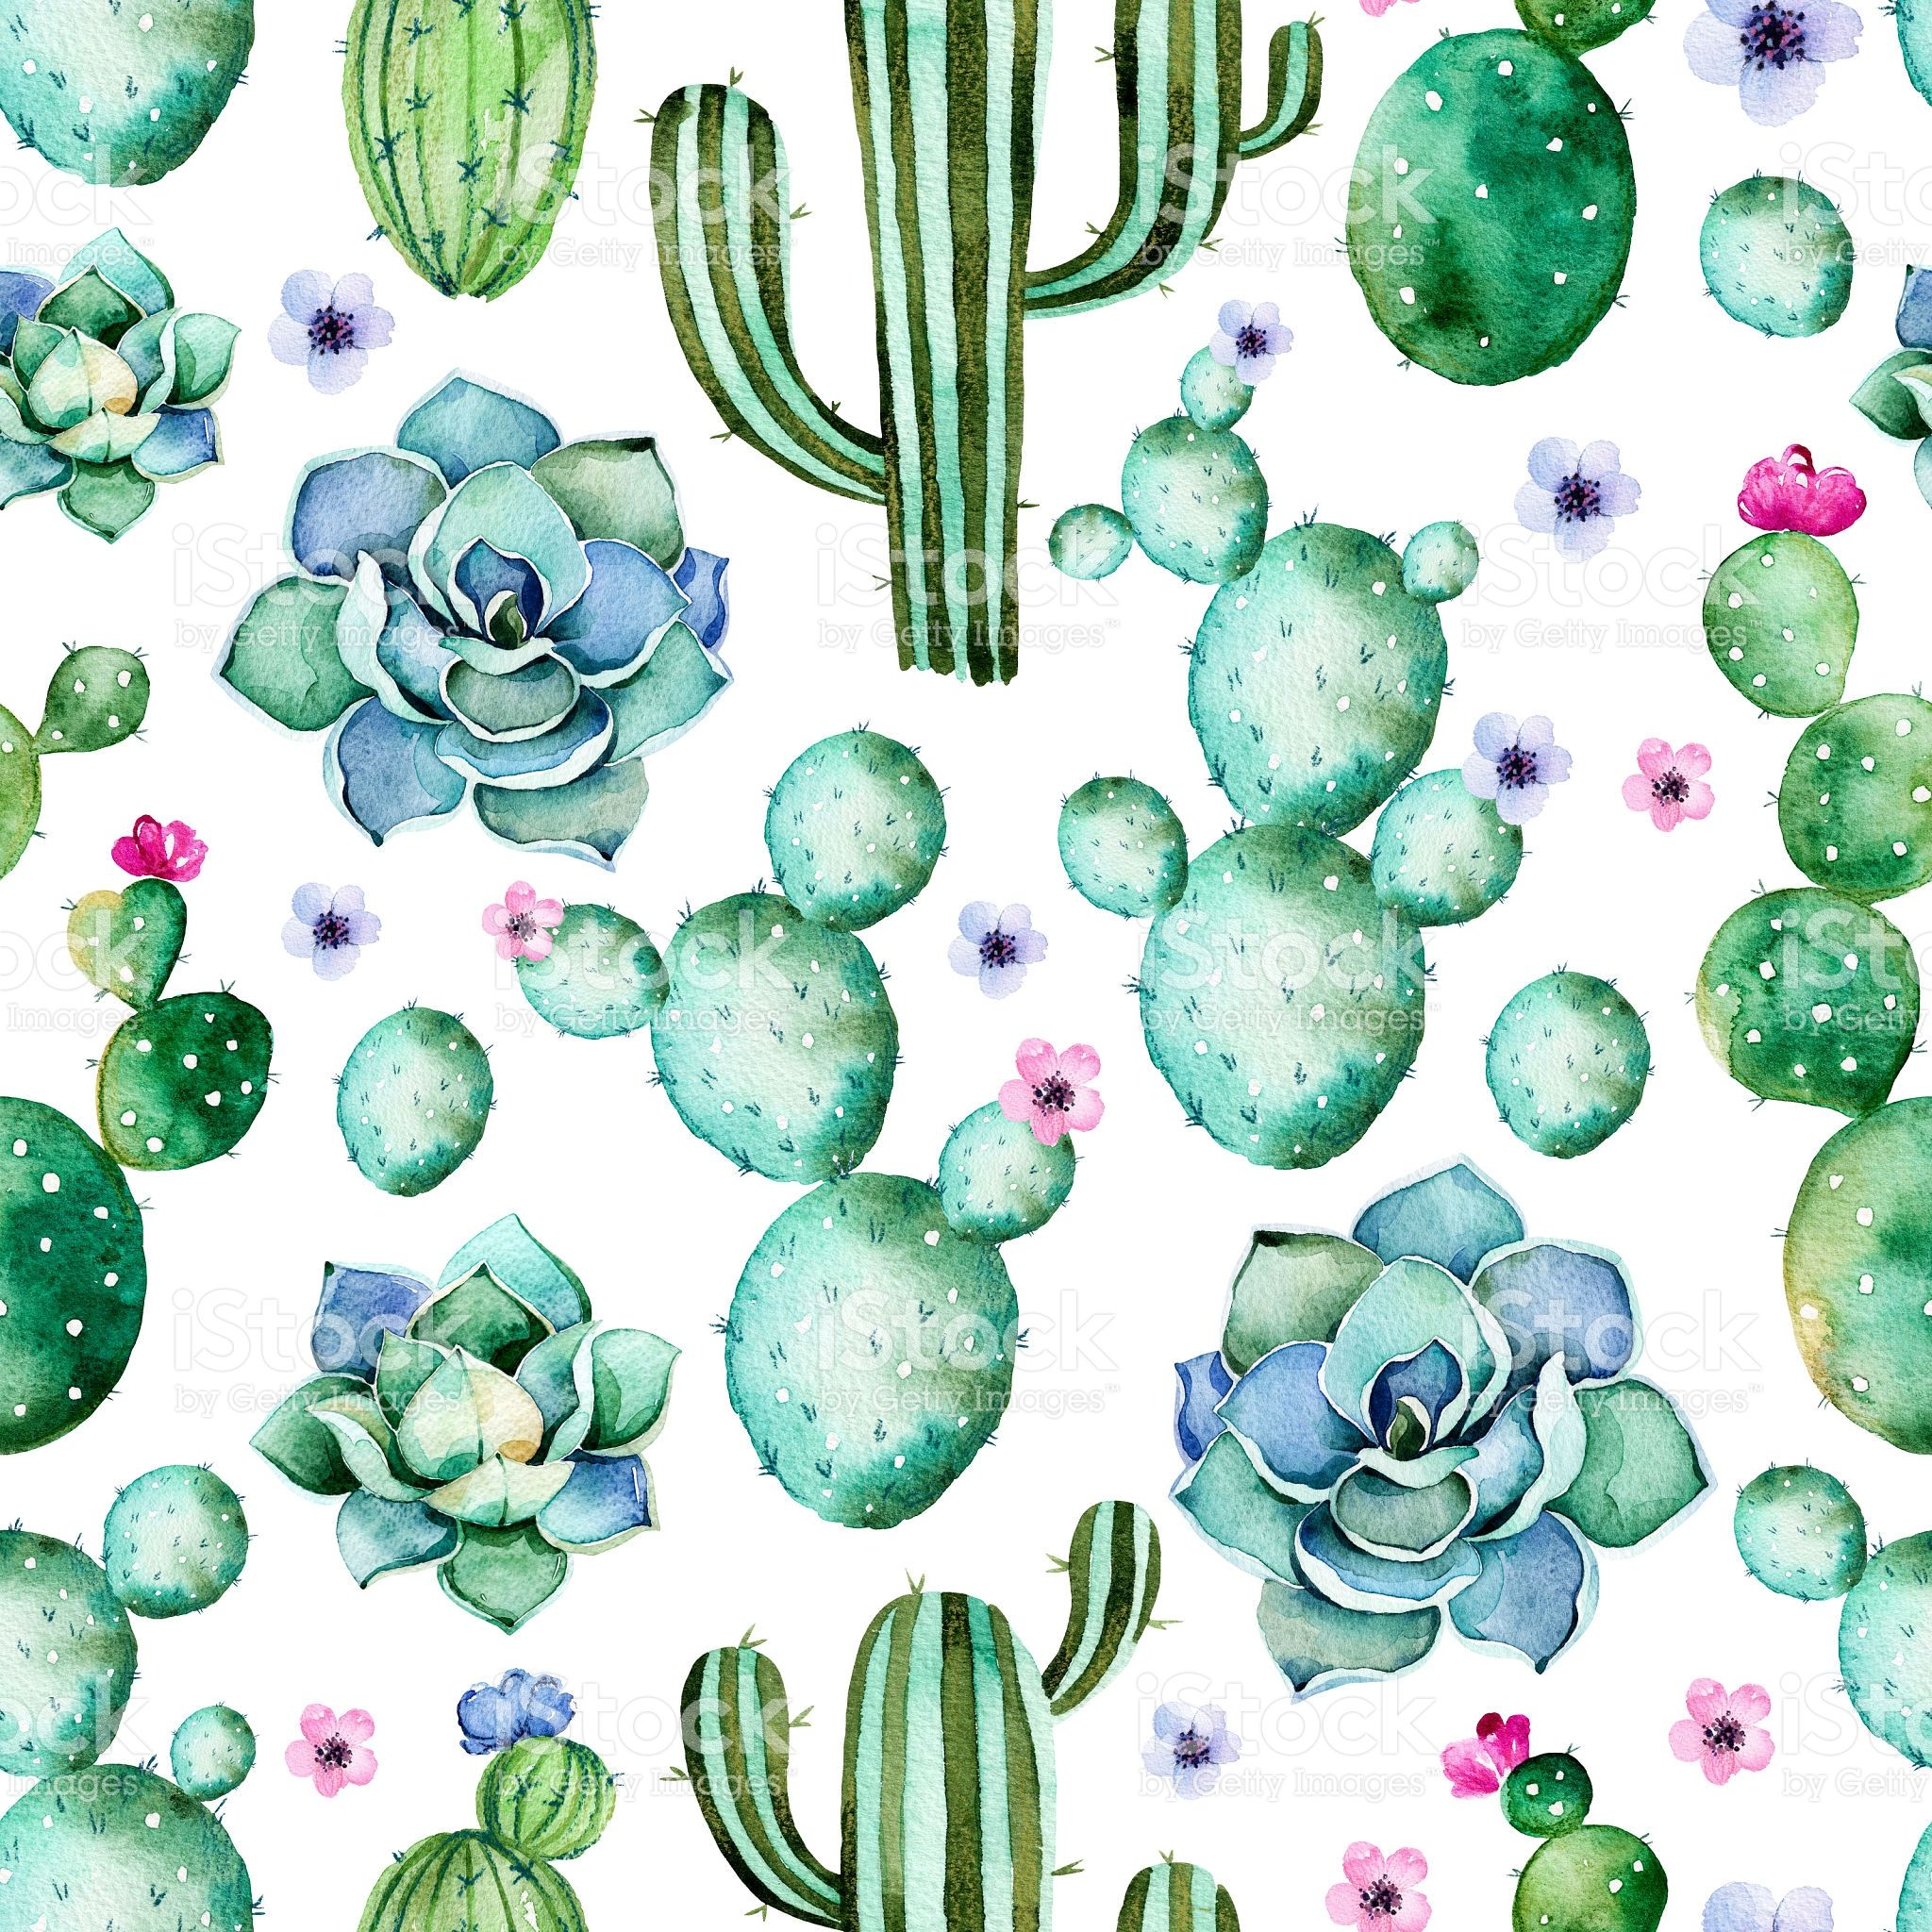 Cactus Print Wallpapers Top Free Cactus Print Backgrounds Wallpaperaccess